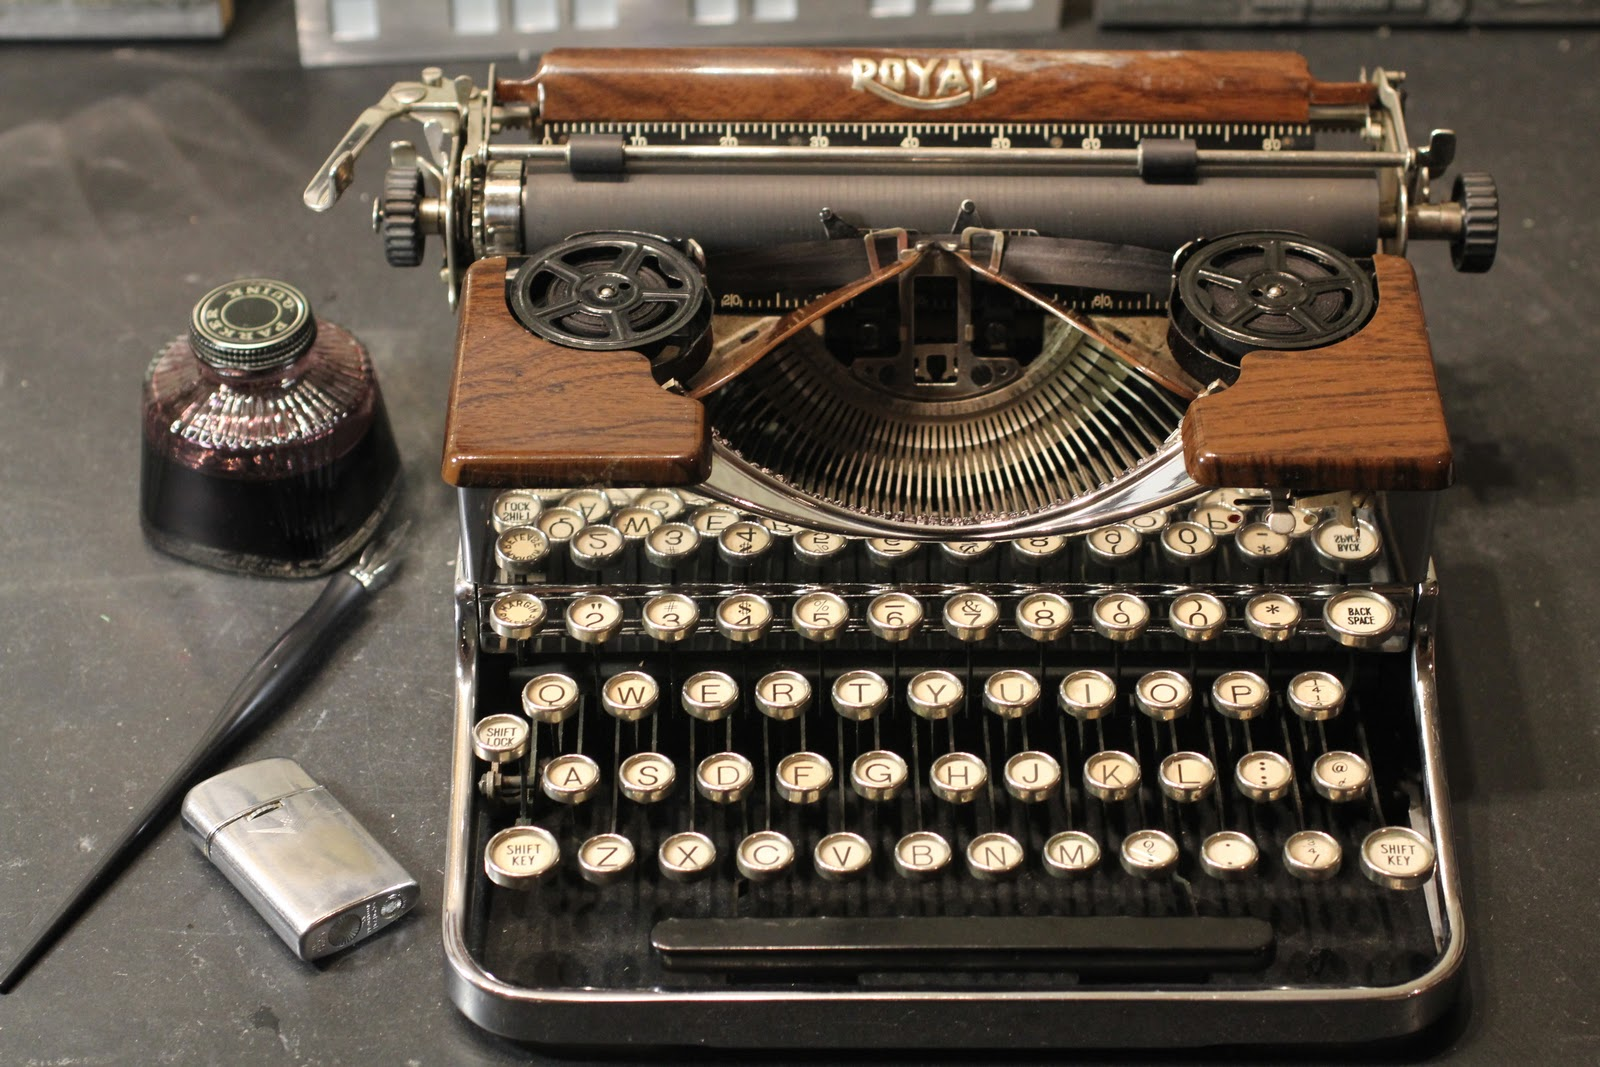 Vintage Royal Portable Typewriter Part - 31: Here Is The Chrome And Wood Grain Royal Portable Looking Shiny And Clean.  For The Record, I Donu0027t Smoke, But The Lighter Seemed To Fit The Scene.